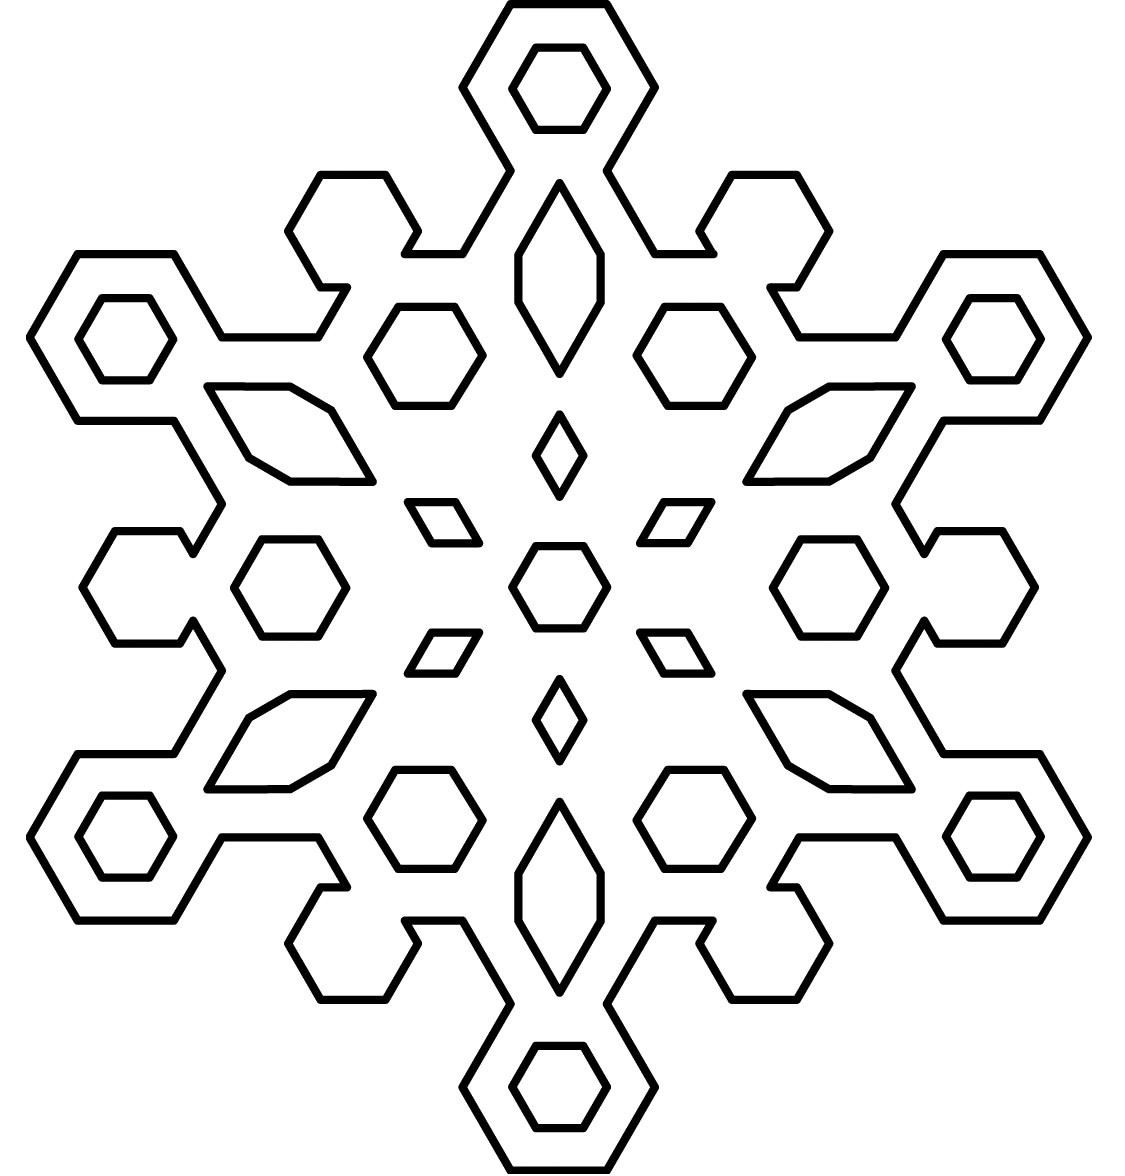 √ Free Printable Snowflake Coloring Pages For Kids - Free Printable Snowflakes